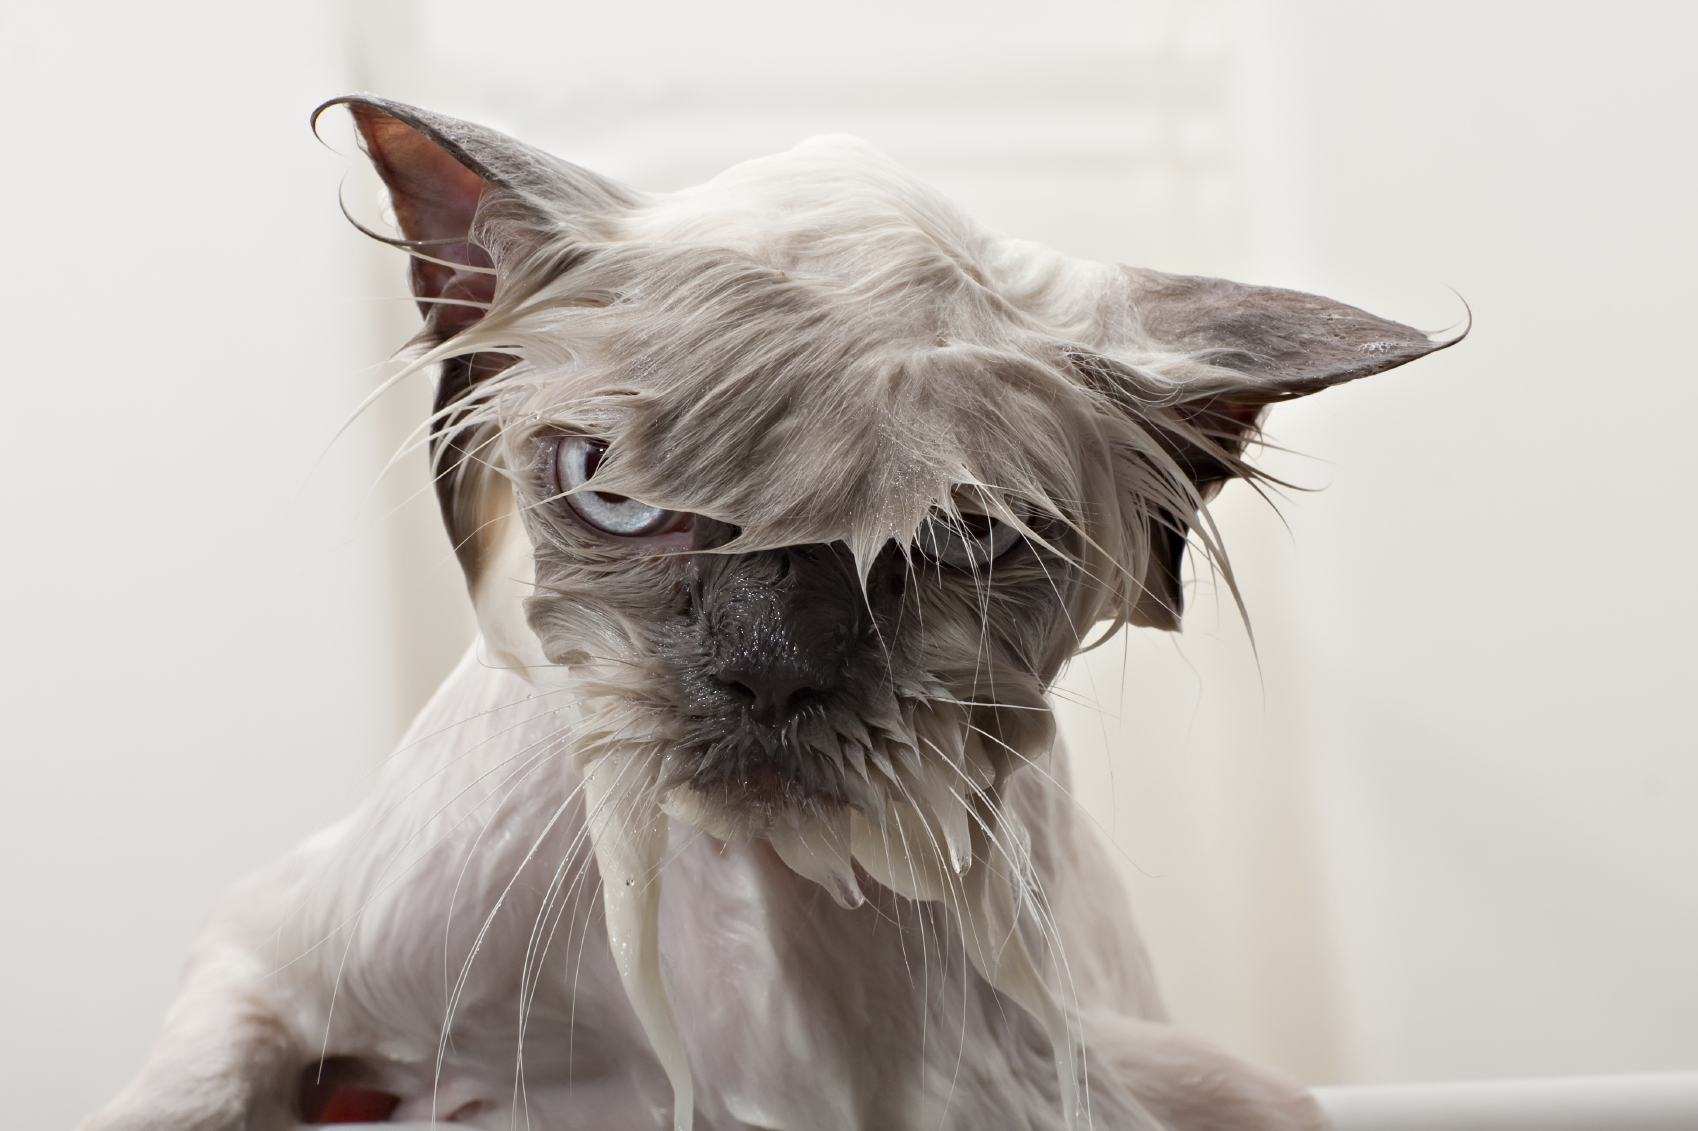 A wet cat looks angry.